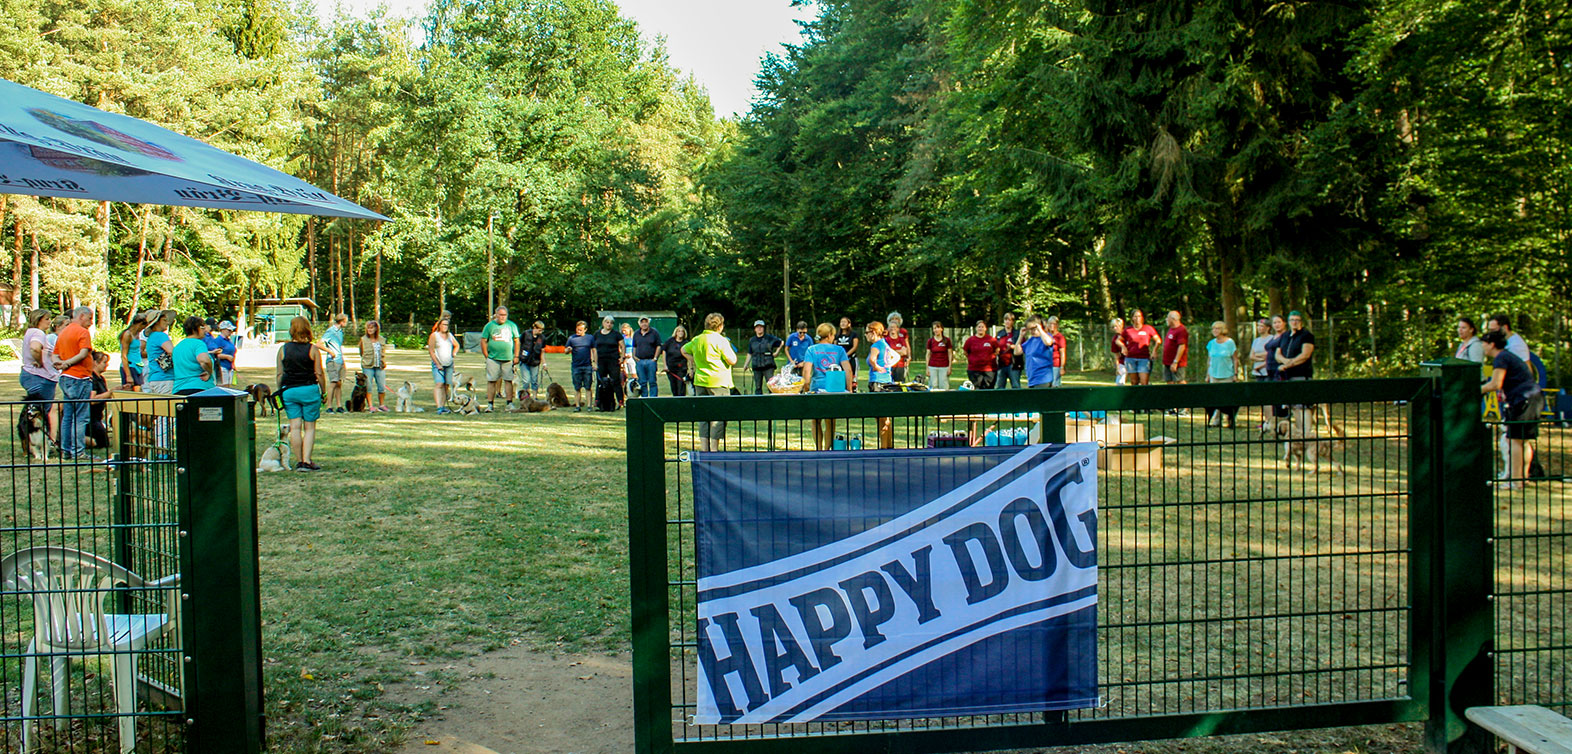 Rally-Obedience Turnier 2018